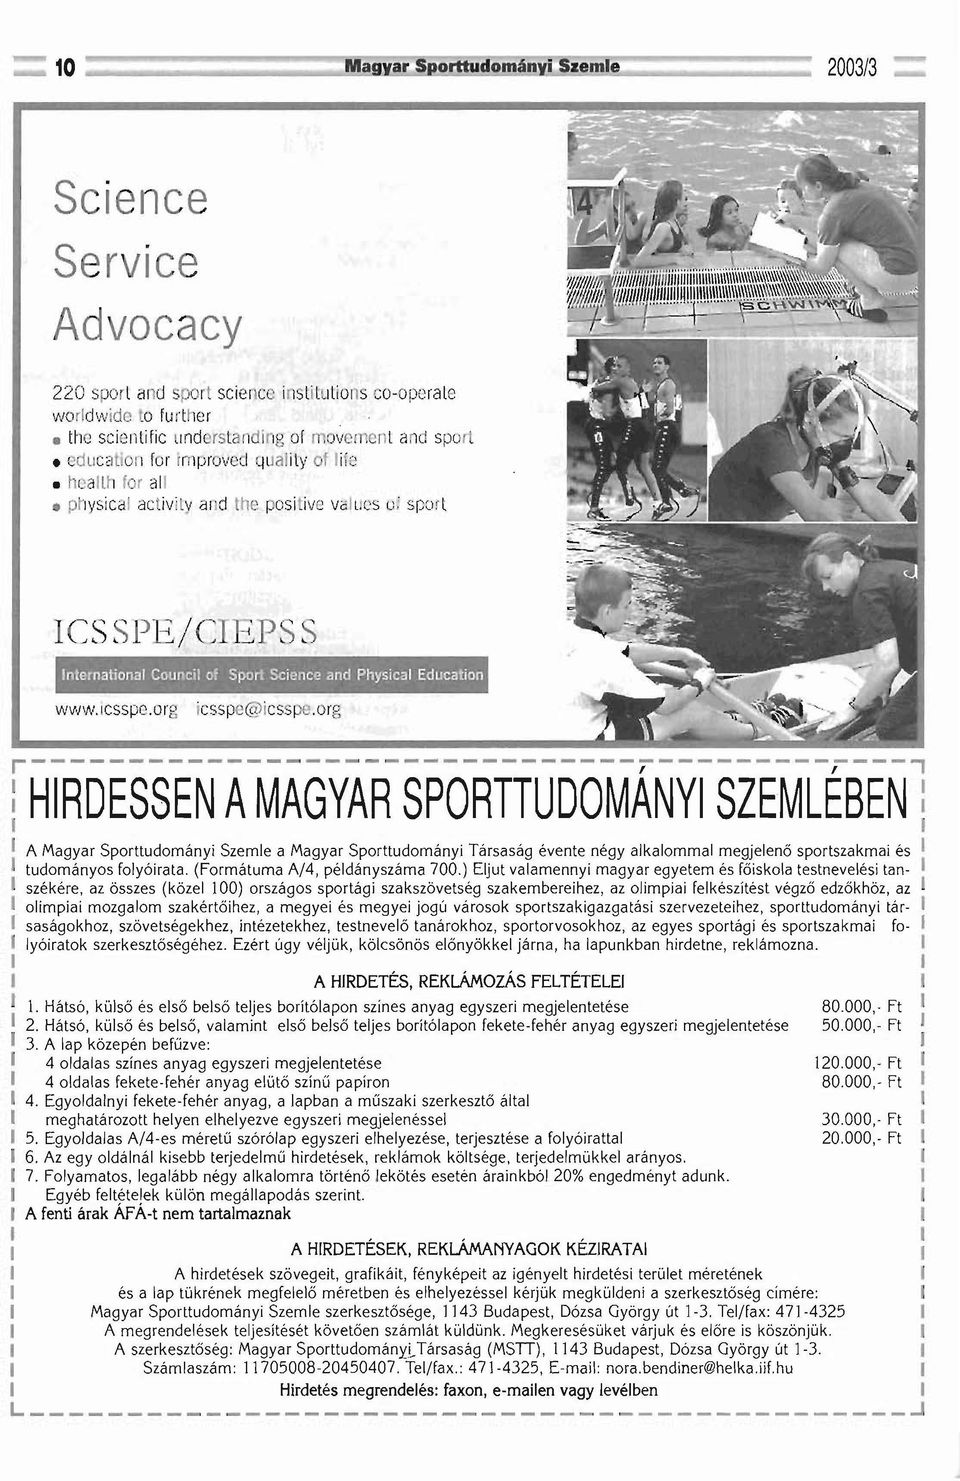 "ie= ======== 2003/3 Science Service Advocacy 220 sporl a d sport scie Ct: i slilul'ons co-op rale worldwide to further lhe scienlific rnderslanding of mvei enl and sport ducatlon for impro""}ec!"